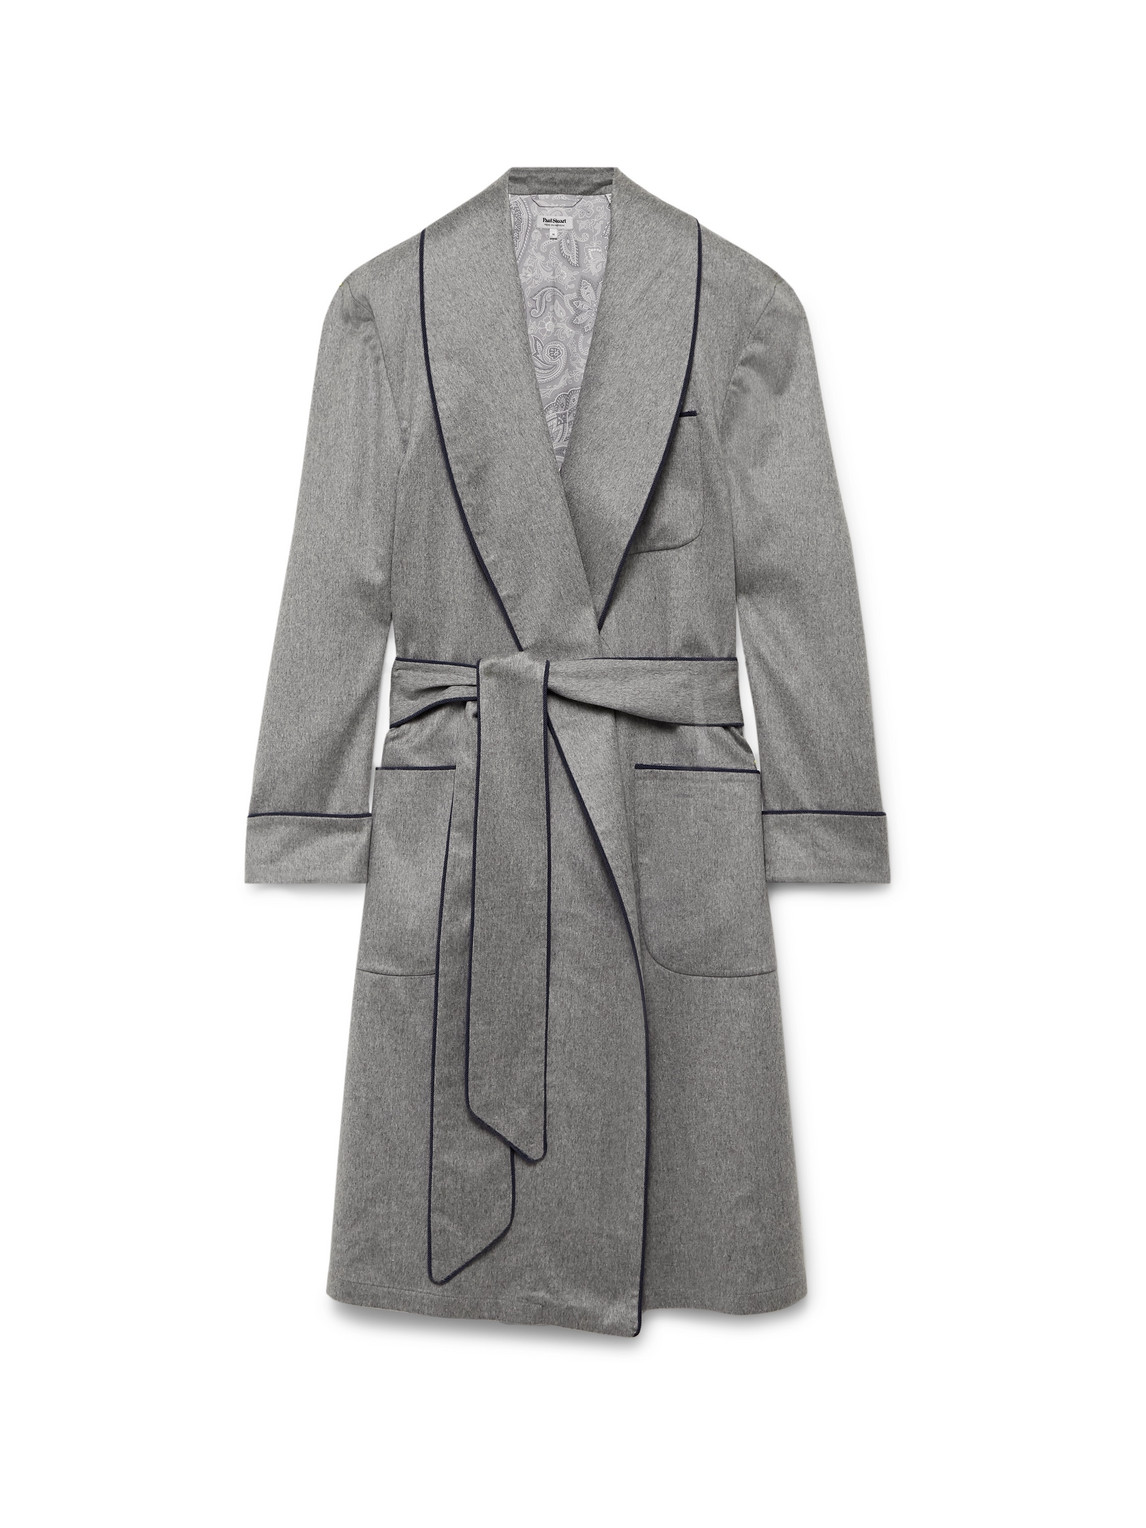 paul stuart - piped checked wool and cashmere-blend robe - men - gray